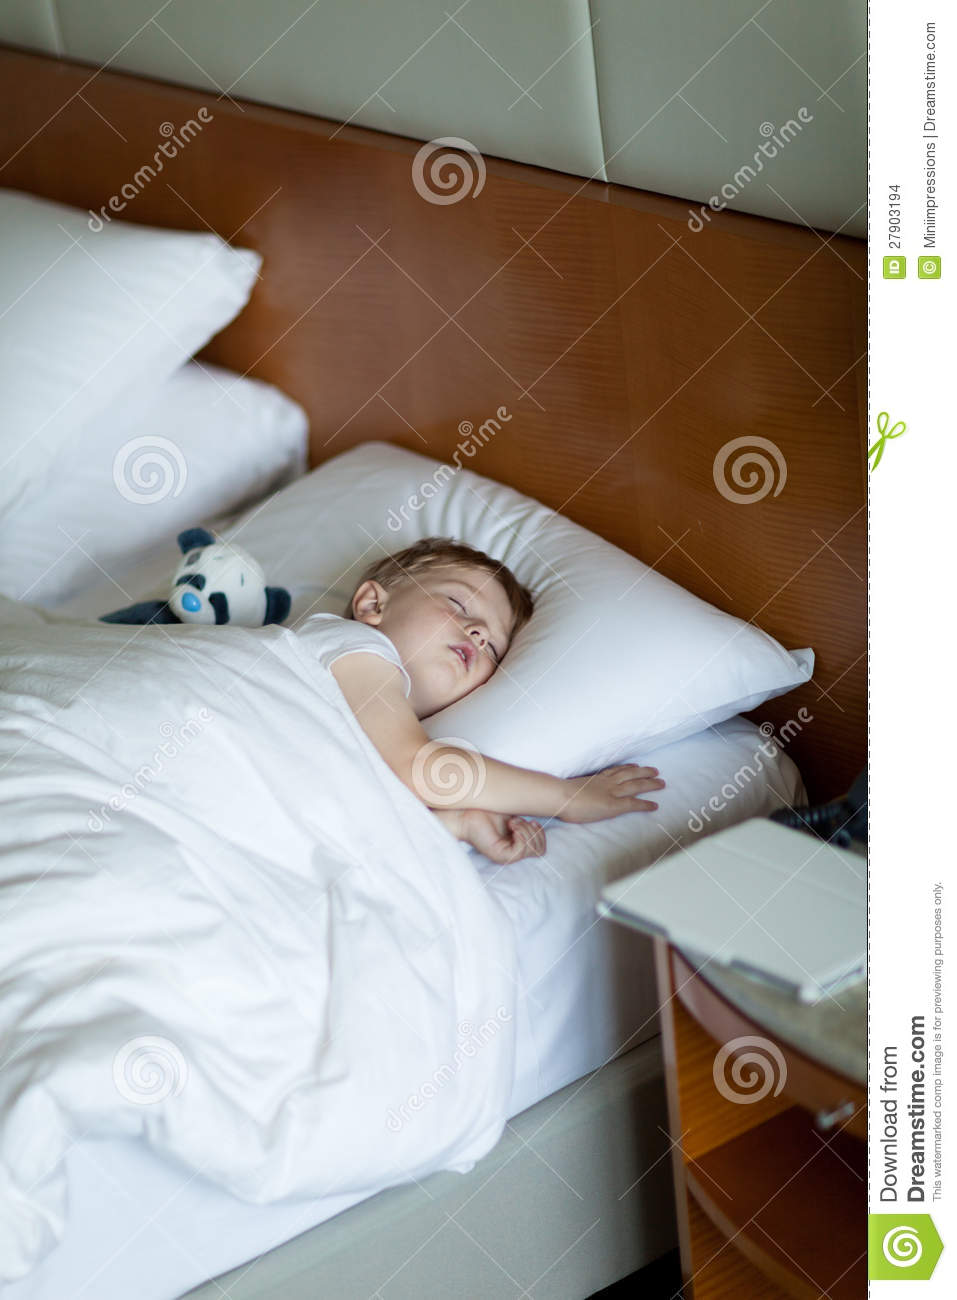 Baby Relax Toddler Bed Adorbale Toddler Sleeping In Hotel Room Stock Photo